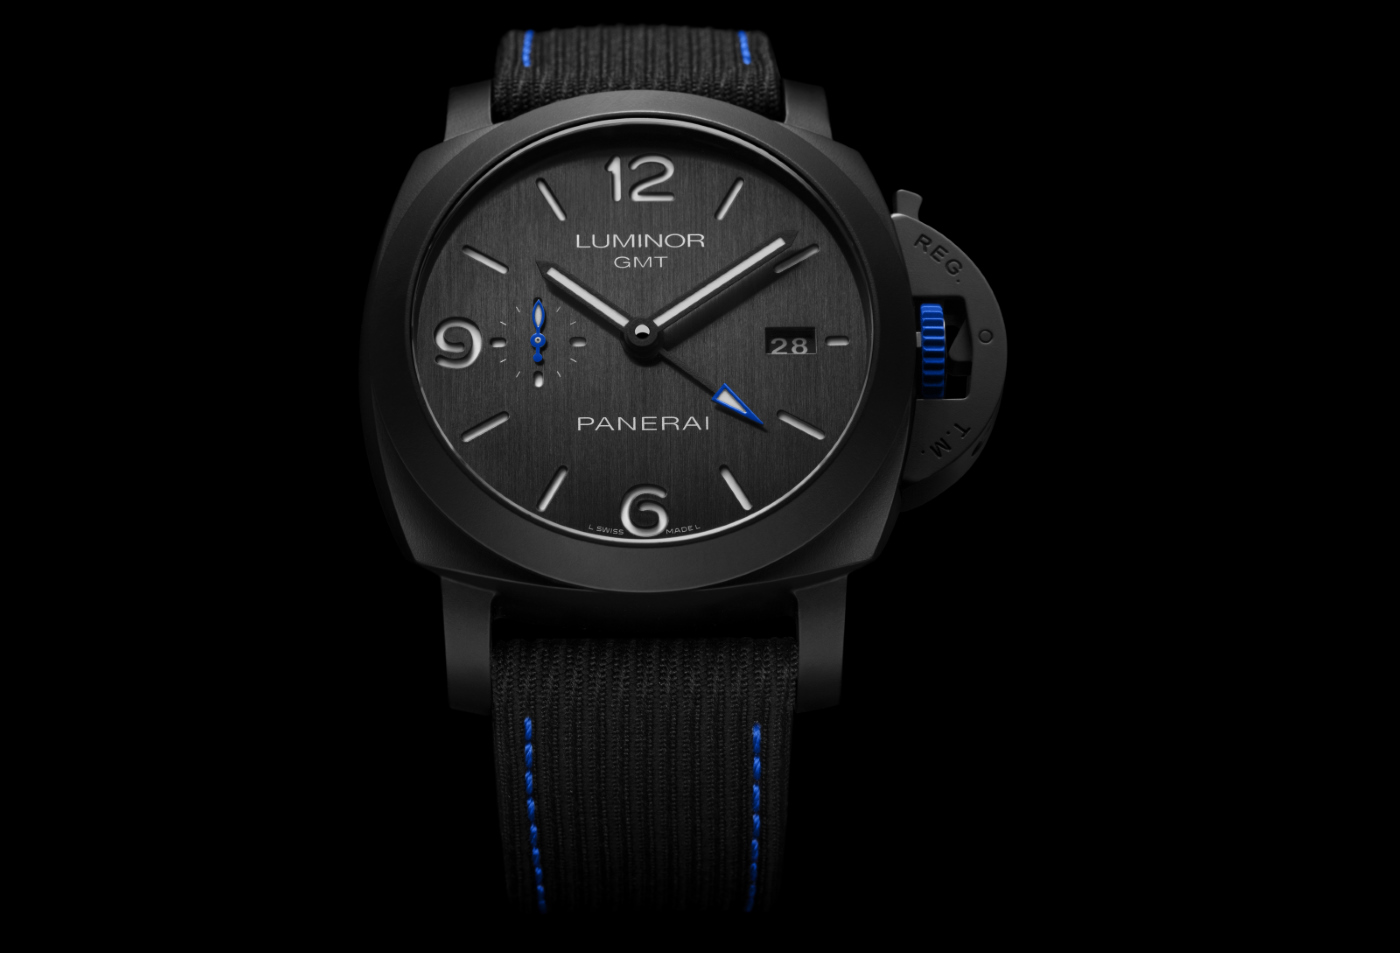 Panerai_luminor_gmt_bucherer_blue_-_Europa_Star_watch_magazine_2020